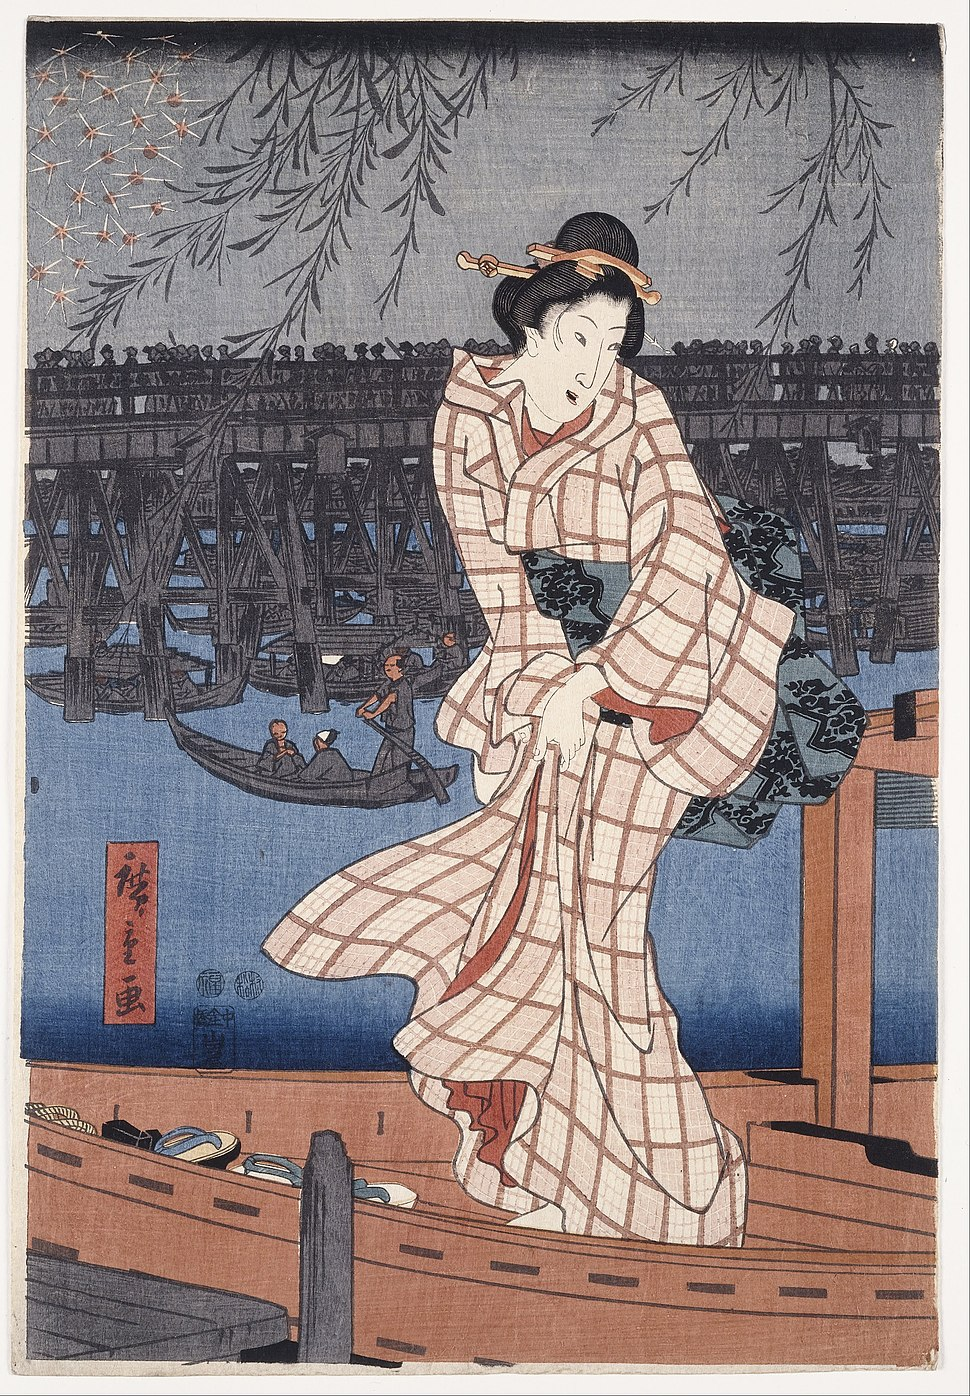 Utagawa Hiroshige - Evening on the Sumida river - Google Art Project